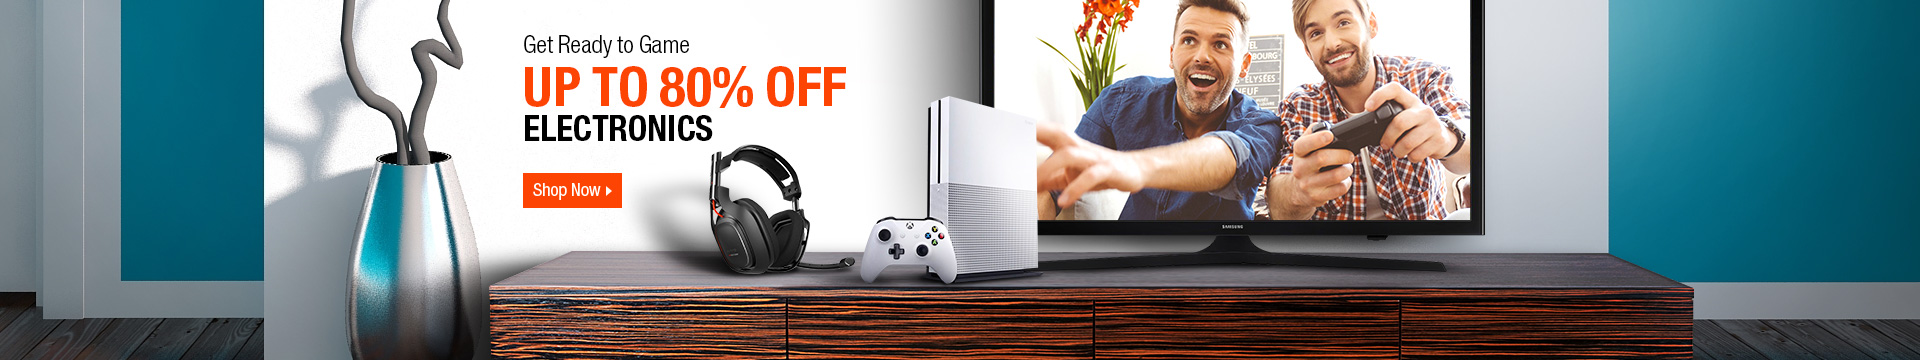 Get ready to game up to 80% off electronics